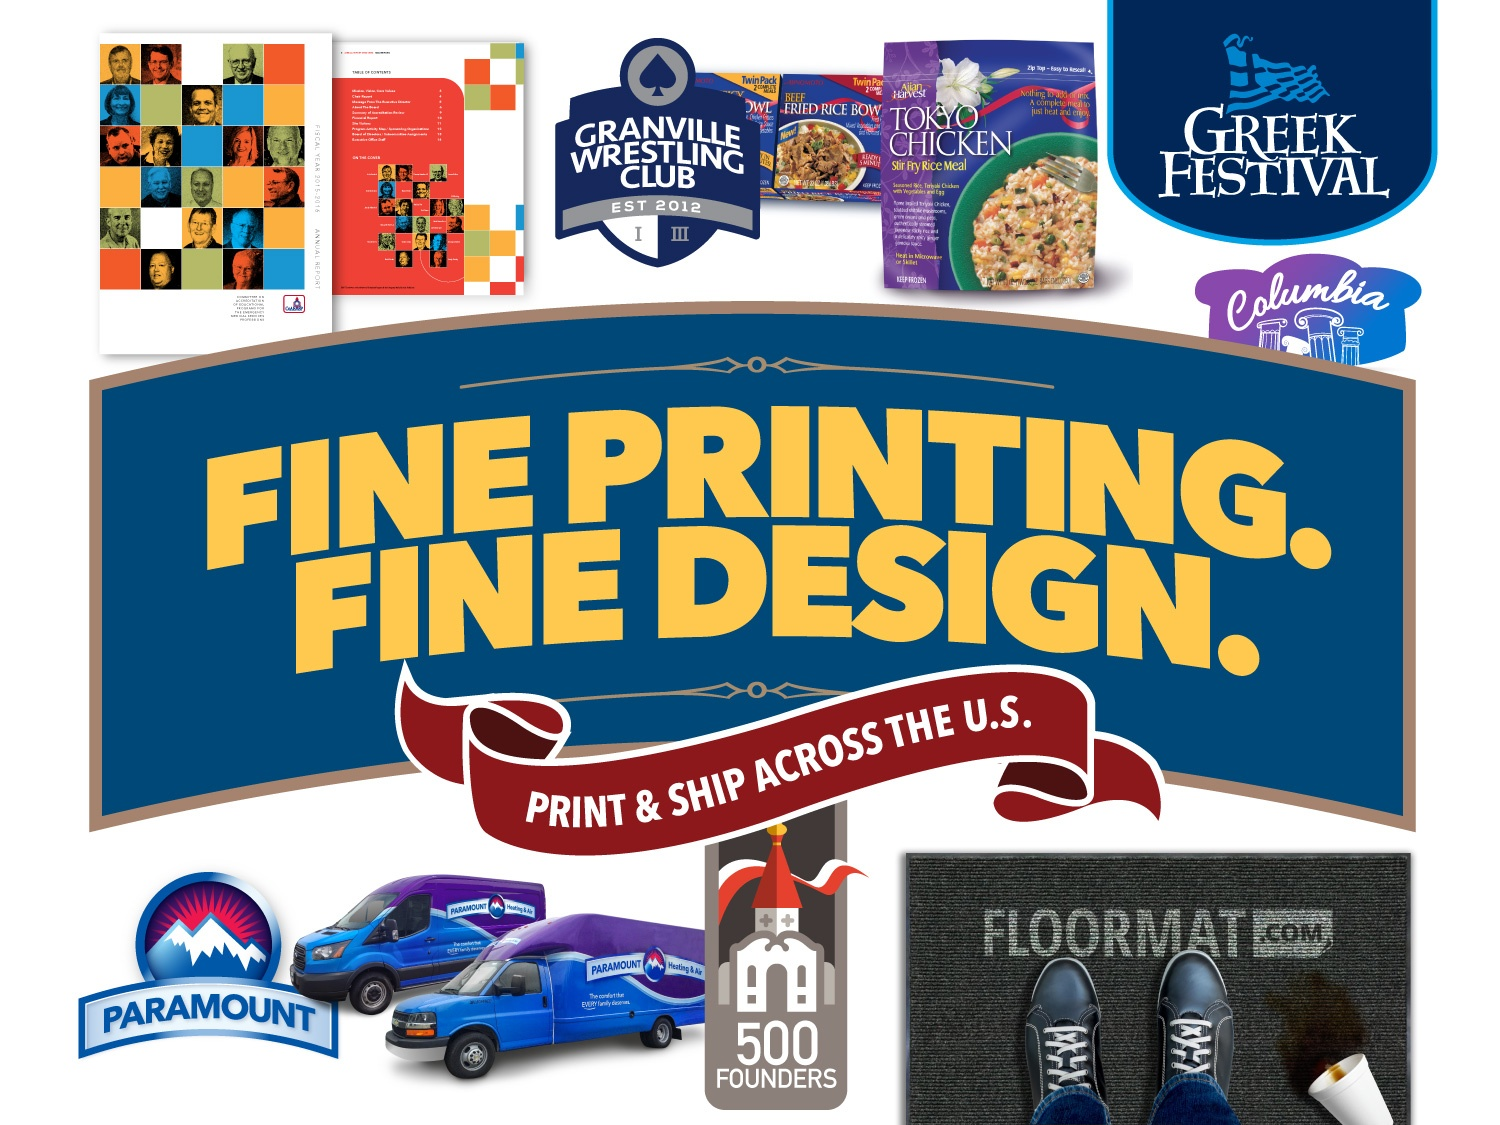 printing and design company in columbus, and central ohio